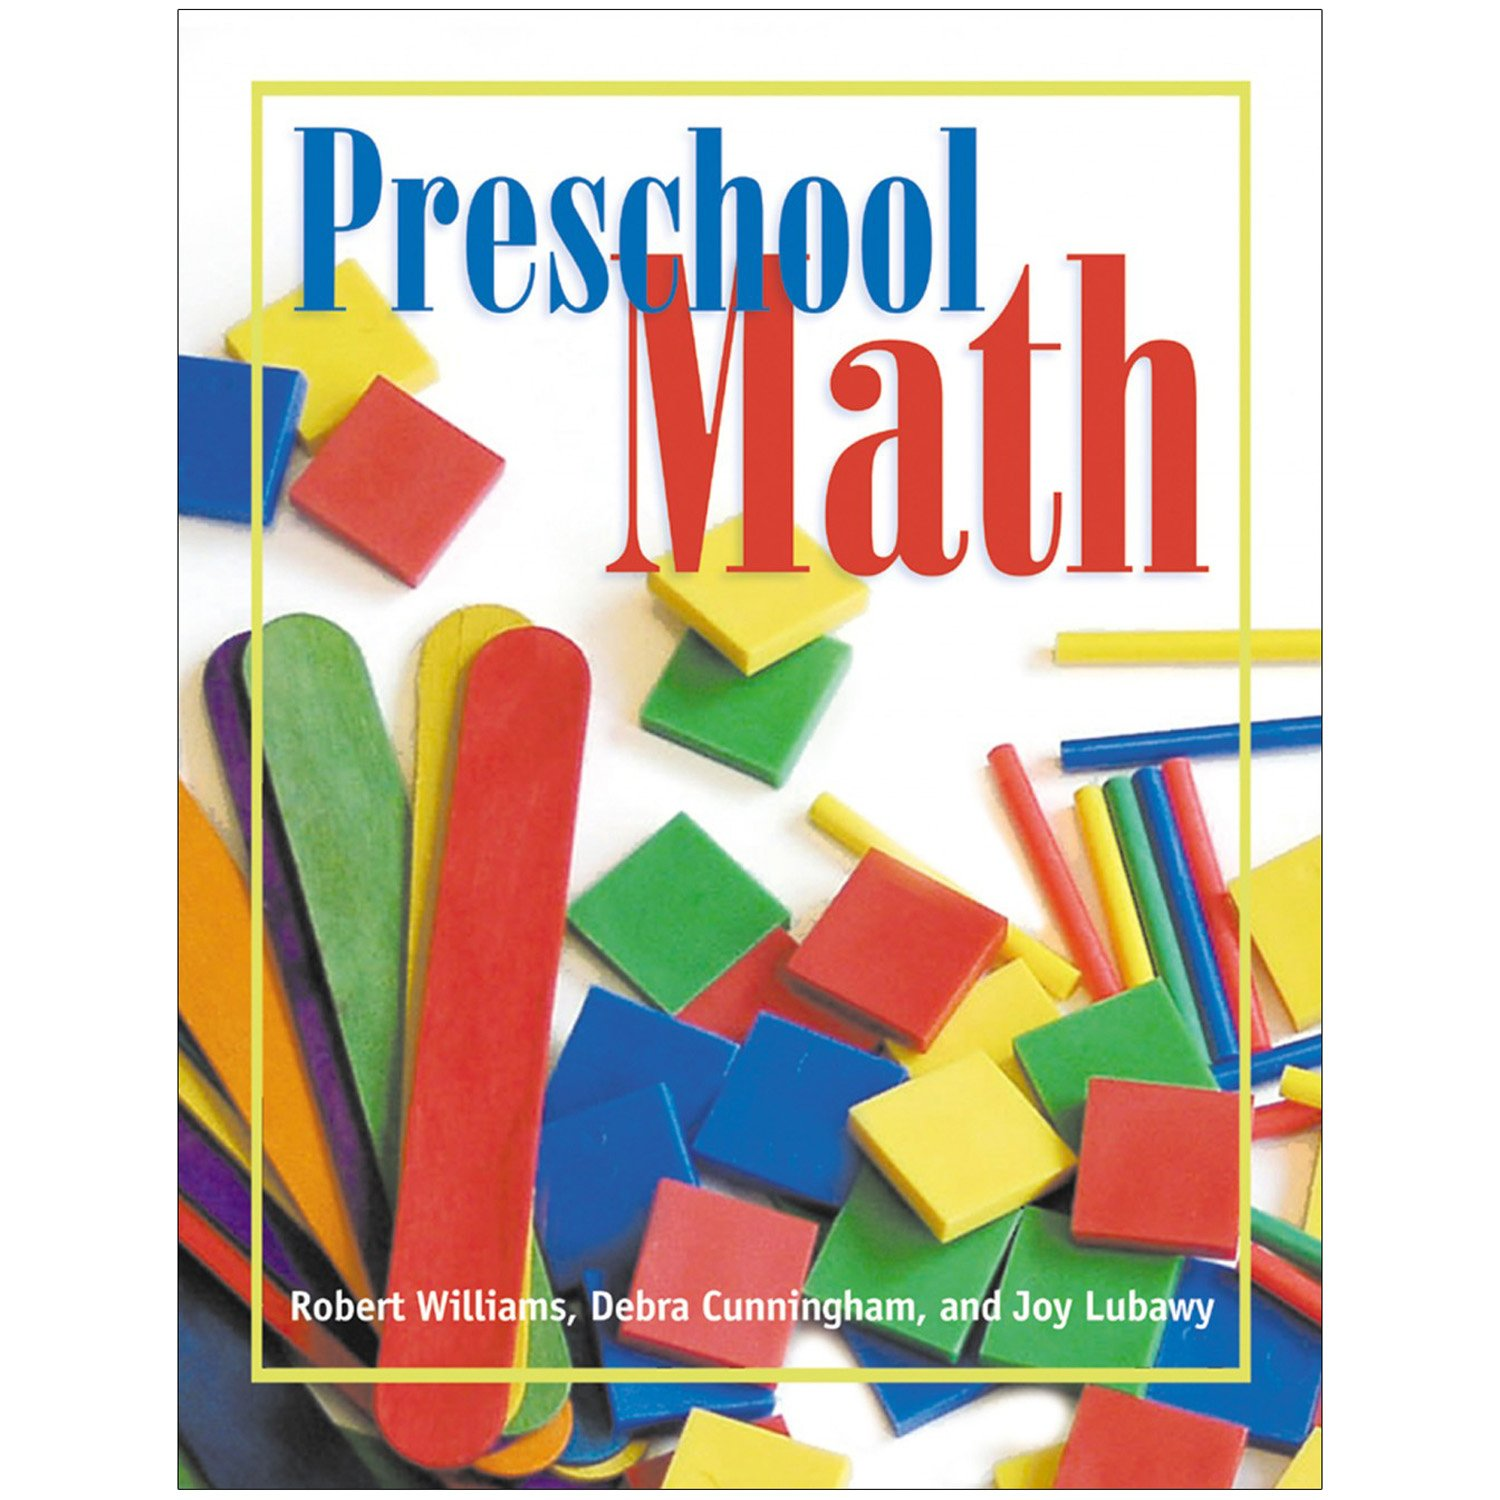 Amazon.com: Preschool Math (9780876590003): Robert A Williams, Joy ...